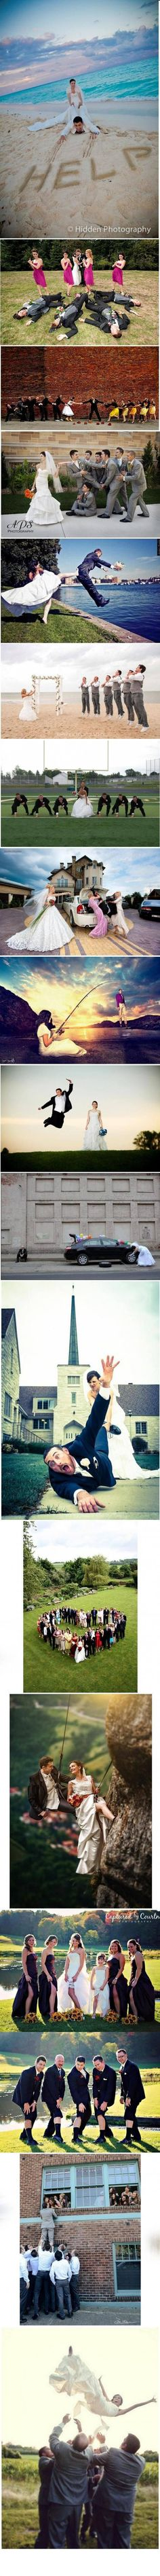 wedding poses | Best Wedding Poses Collection